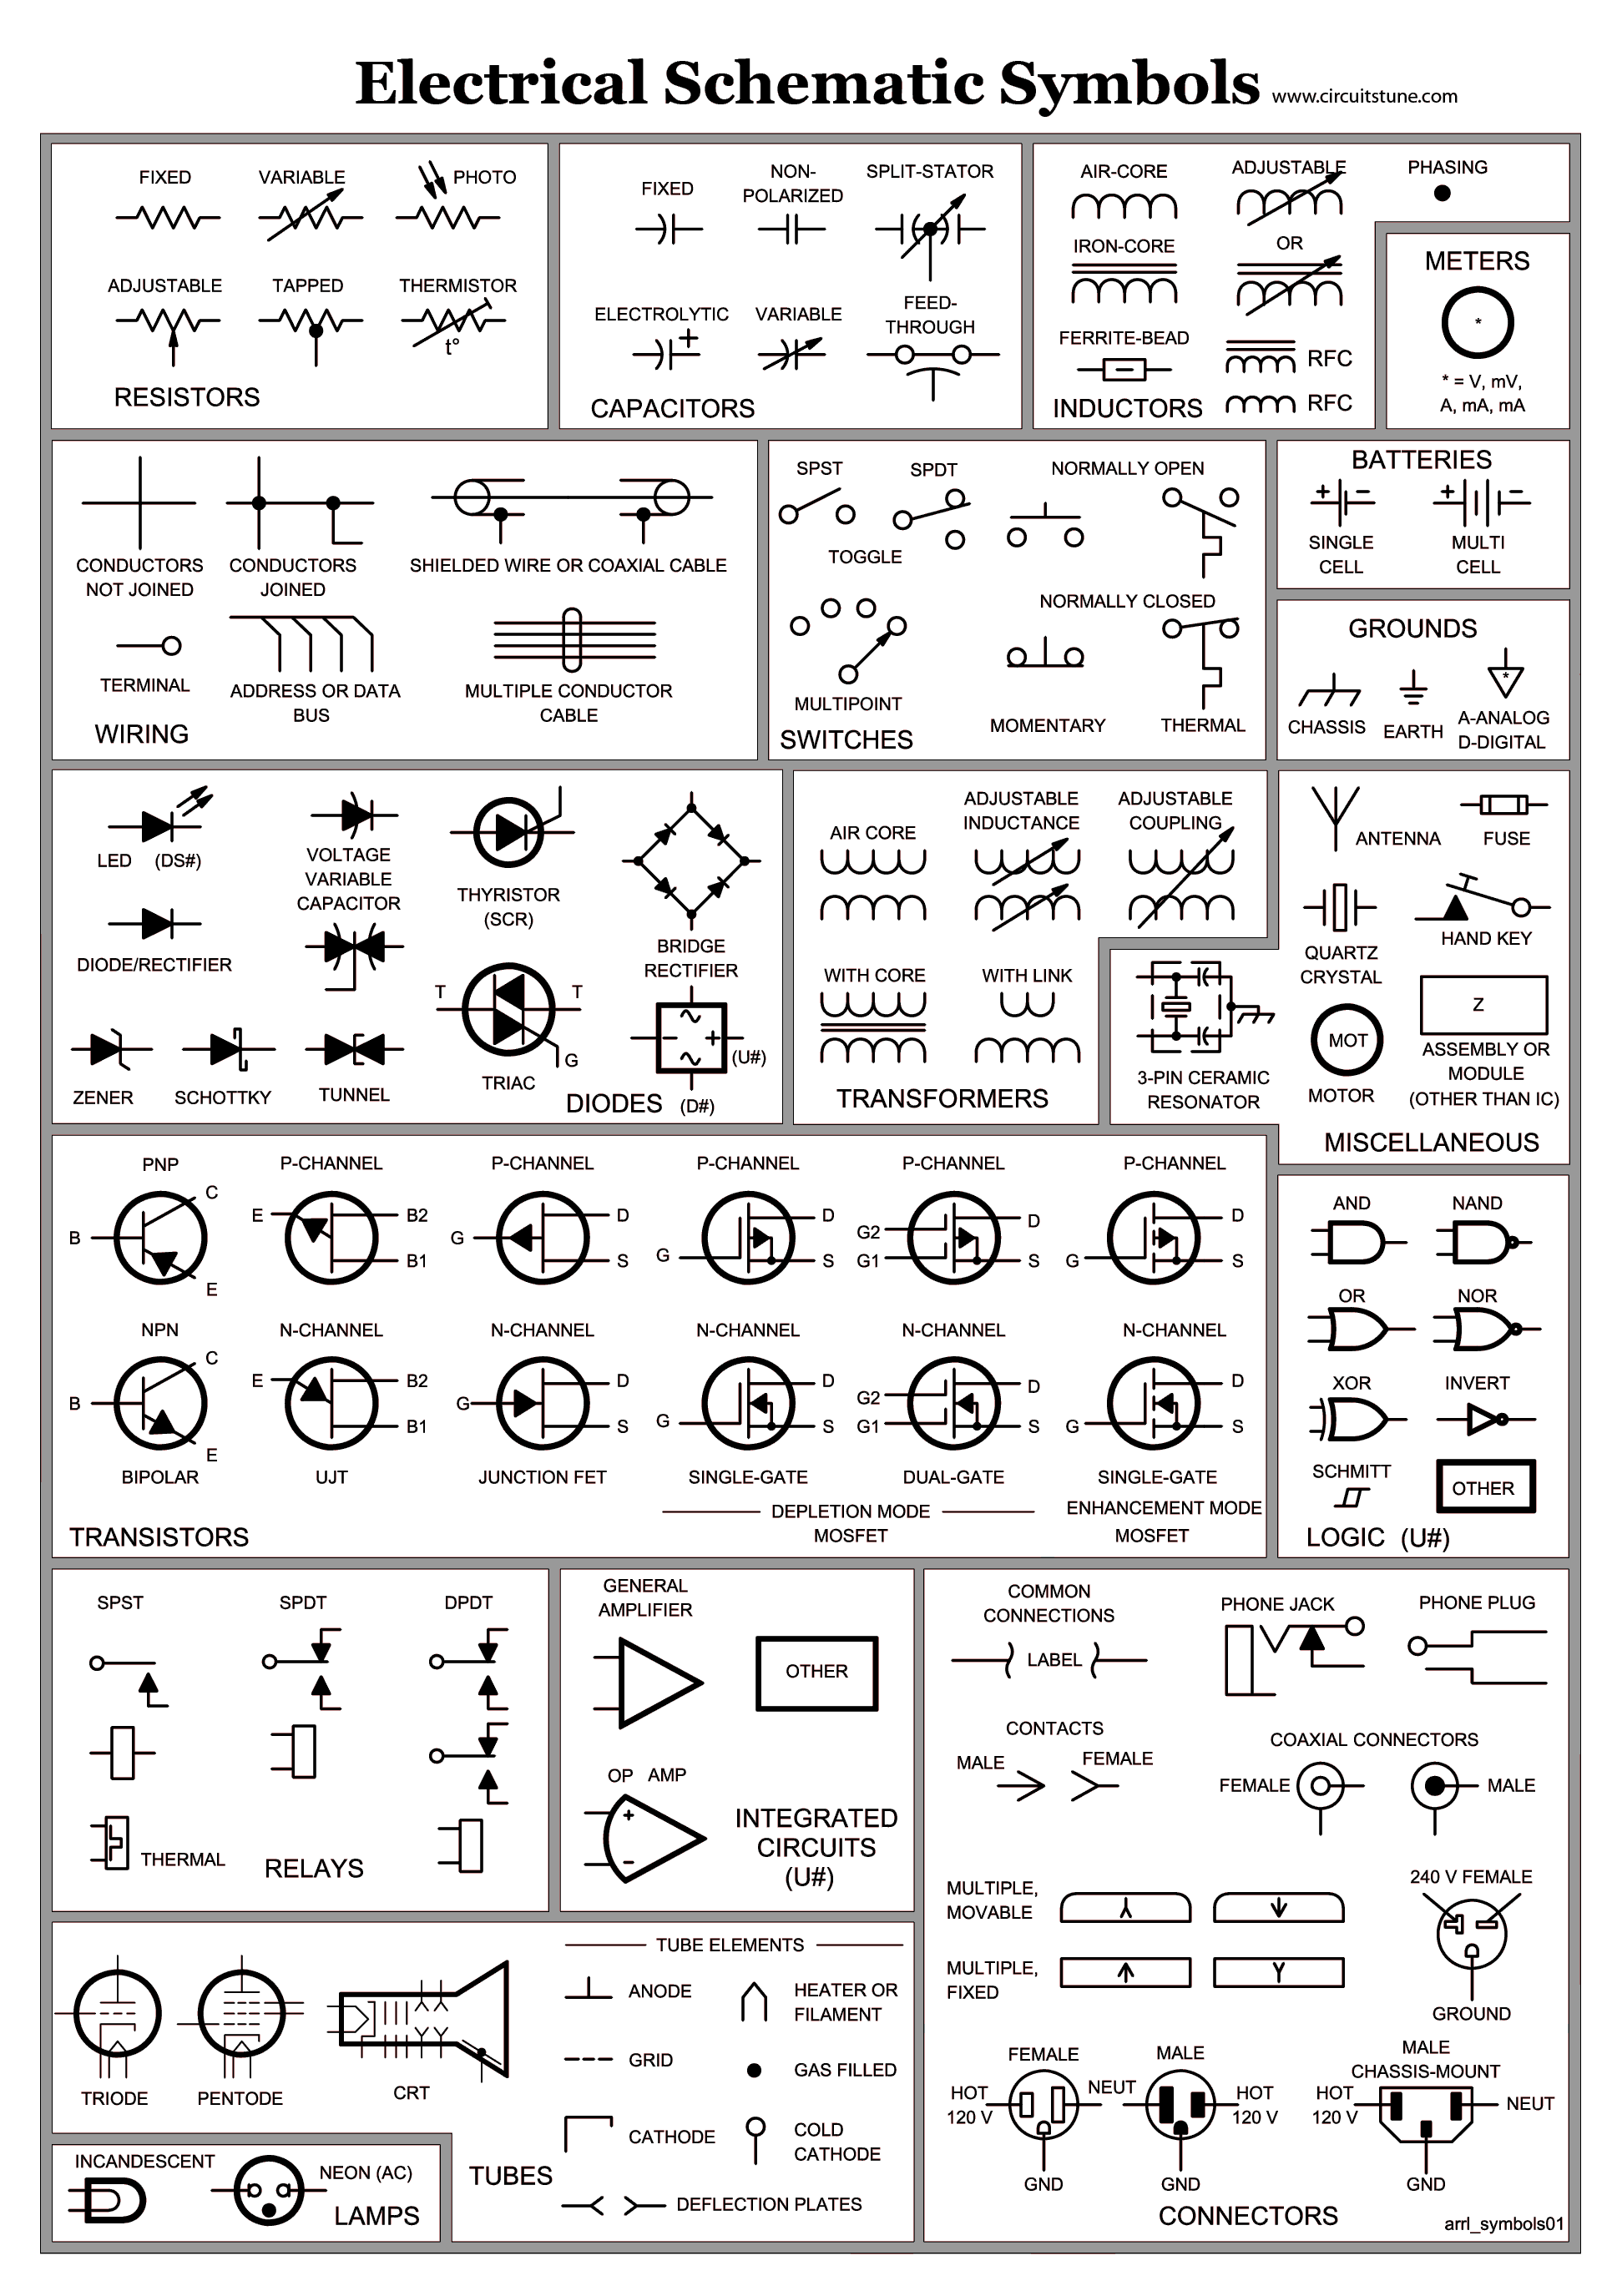 a65d176364692d2ebe913b58a654cfc3 electrical schematic symbols wire diagram symbols automotive electrical engineering wiring diagrams at creativeand.co